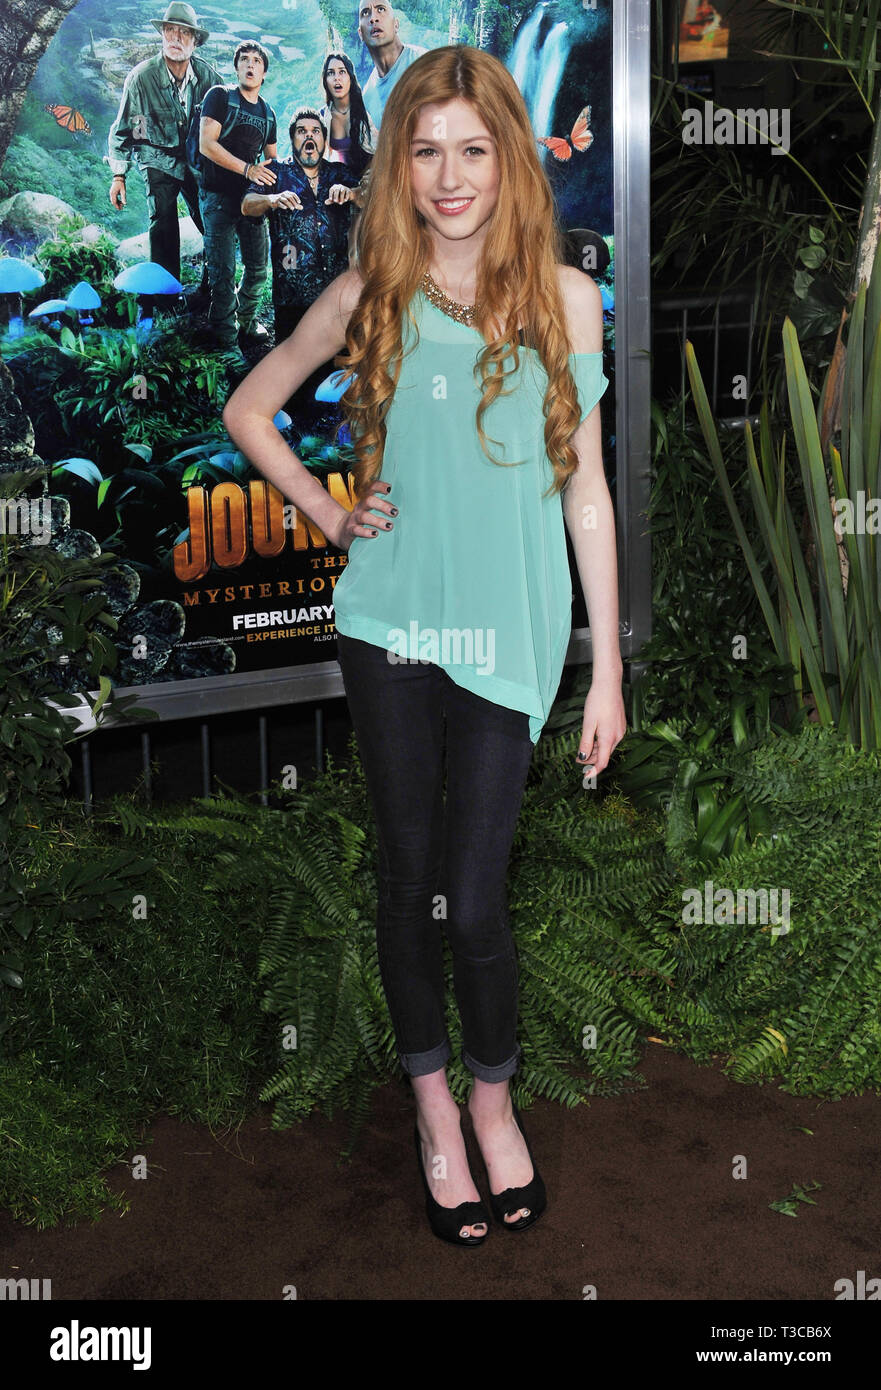 Katherine Mcnamara At The Journey 2 The Mysterious Island Premiere At The Chinese Theatre In Los Angeles Katherine Mcnamara 93 Event In Hollywood Life California Red Carpet Event Usa Film Industry Celebrities Photography